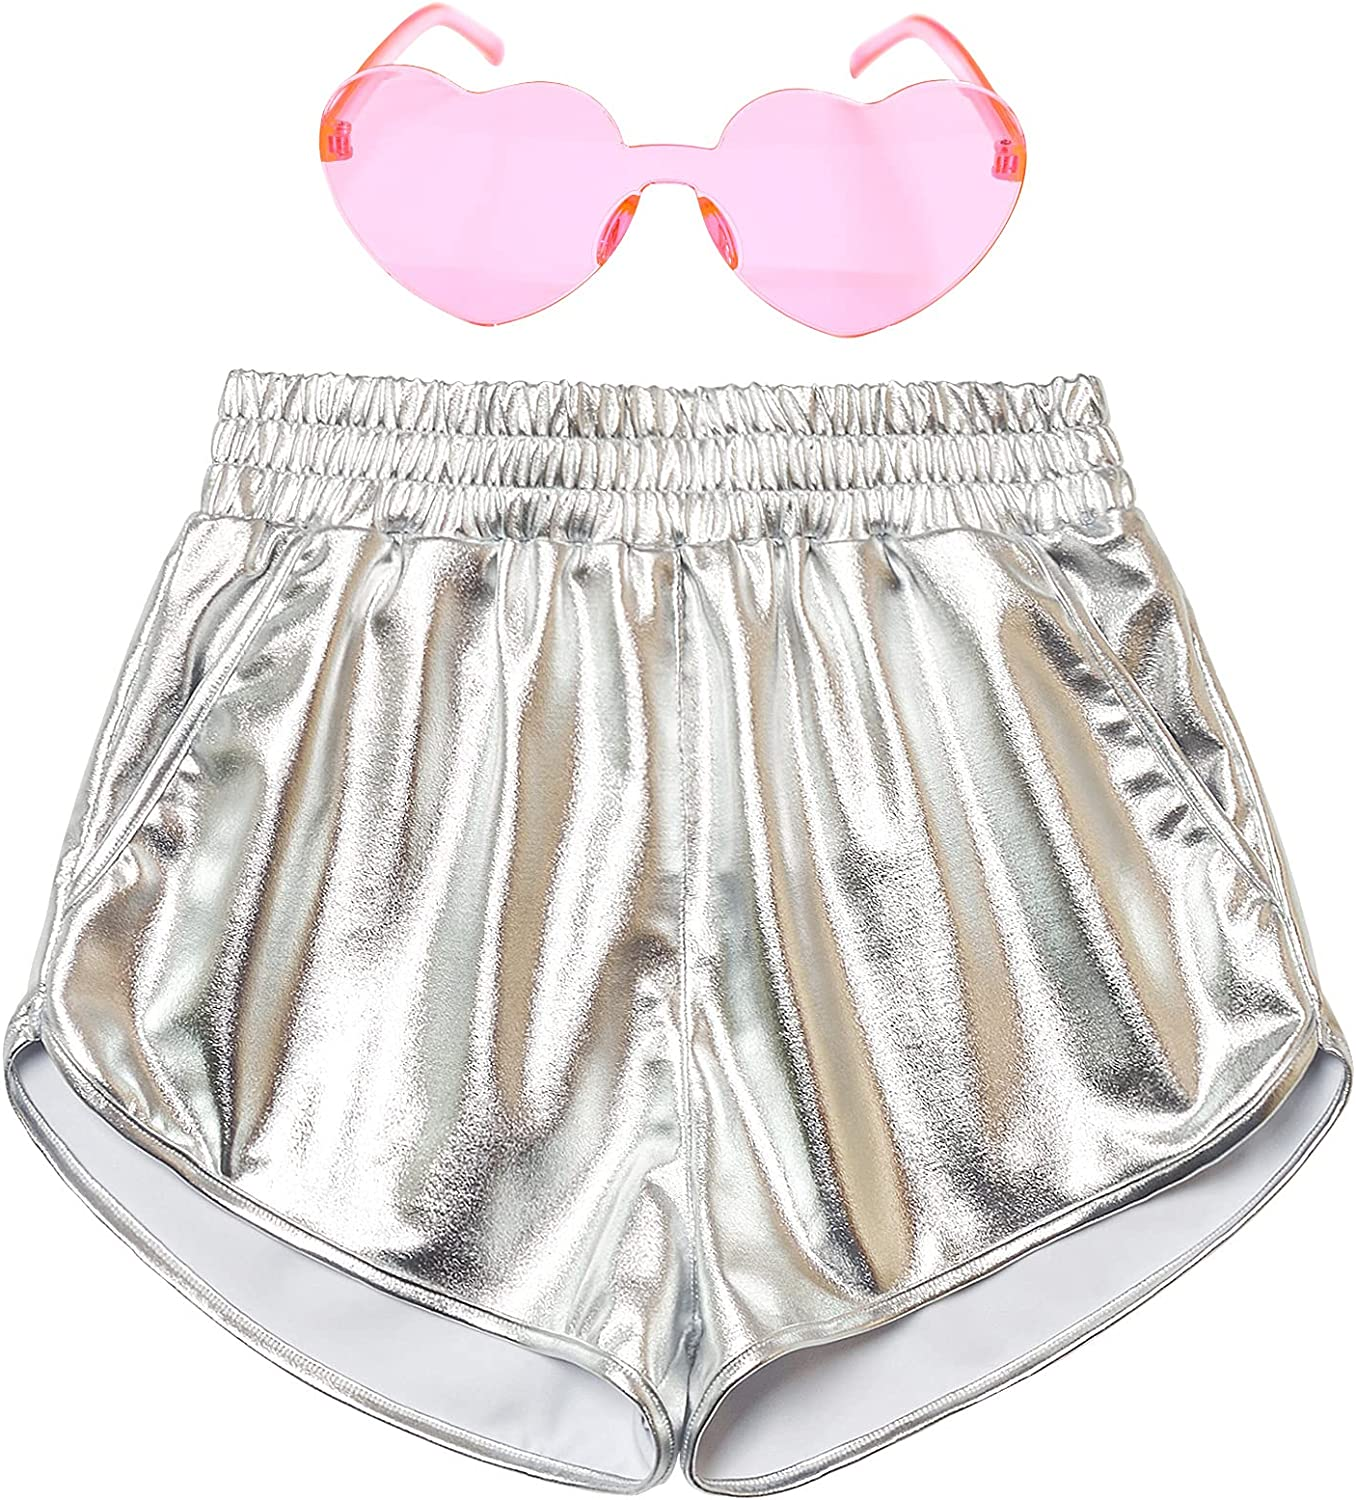 Mirawise Inventory cleanup selling sale Girls Metallic Shorts Shiny Pants Out Hot Dance Sparkly New product! New type